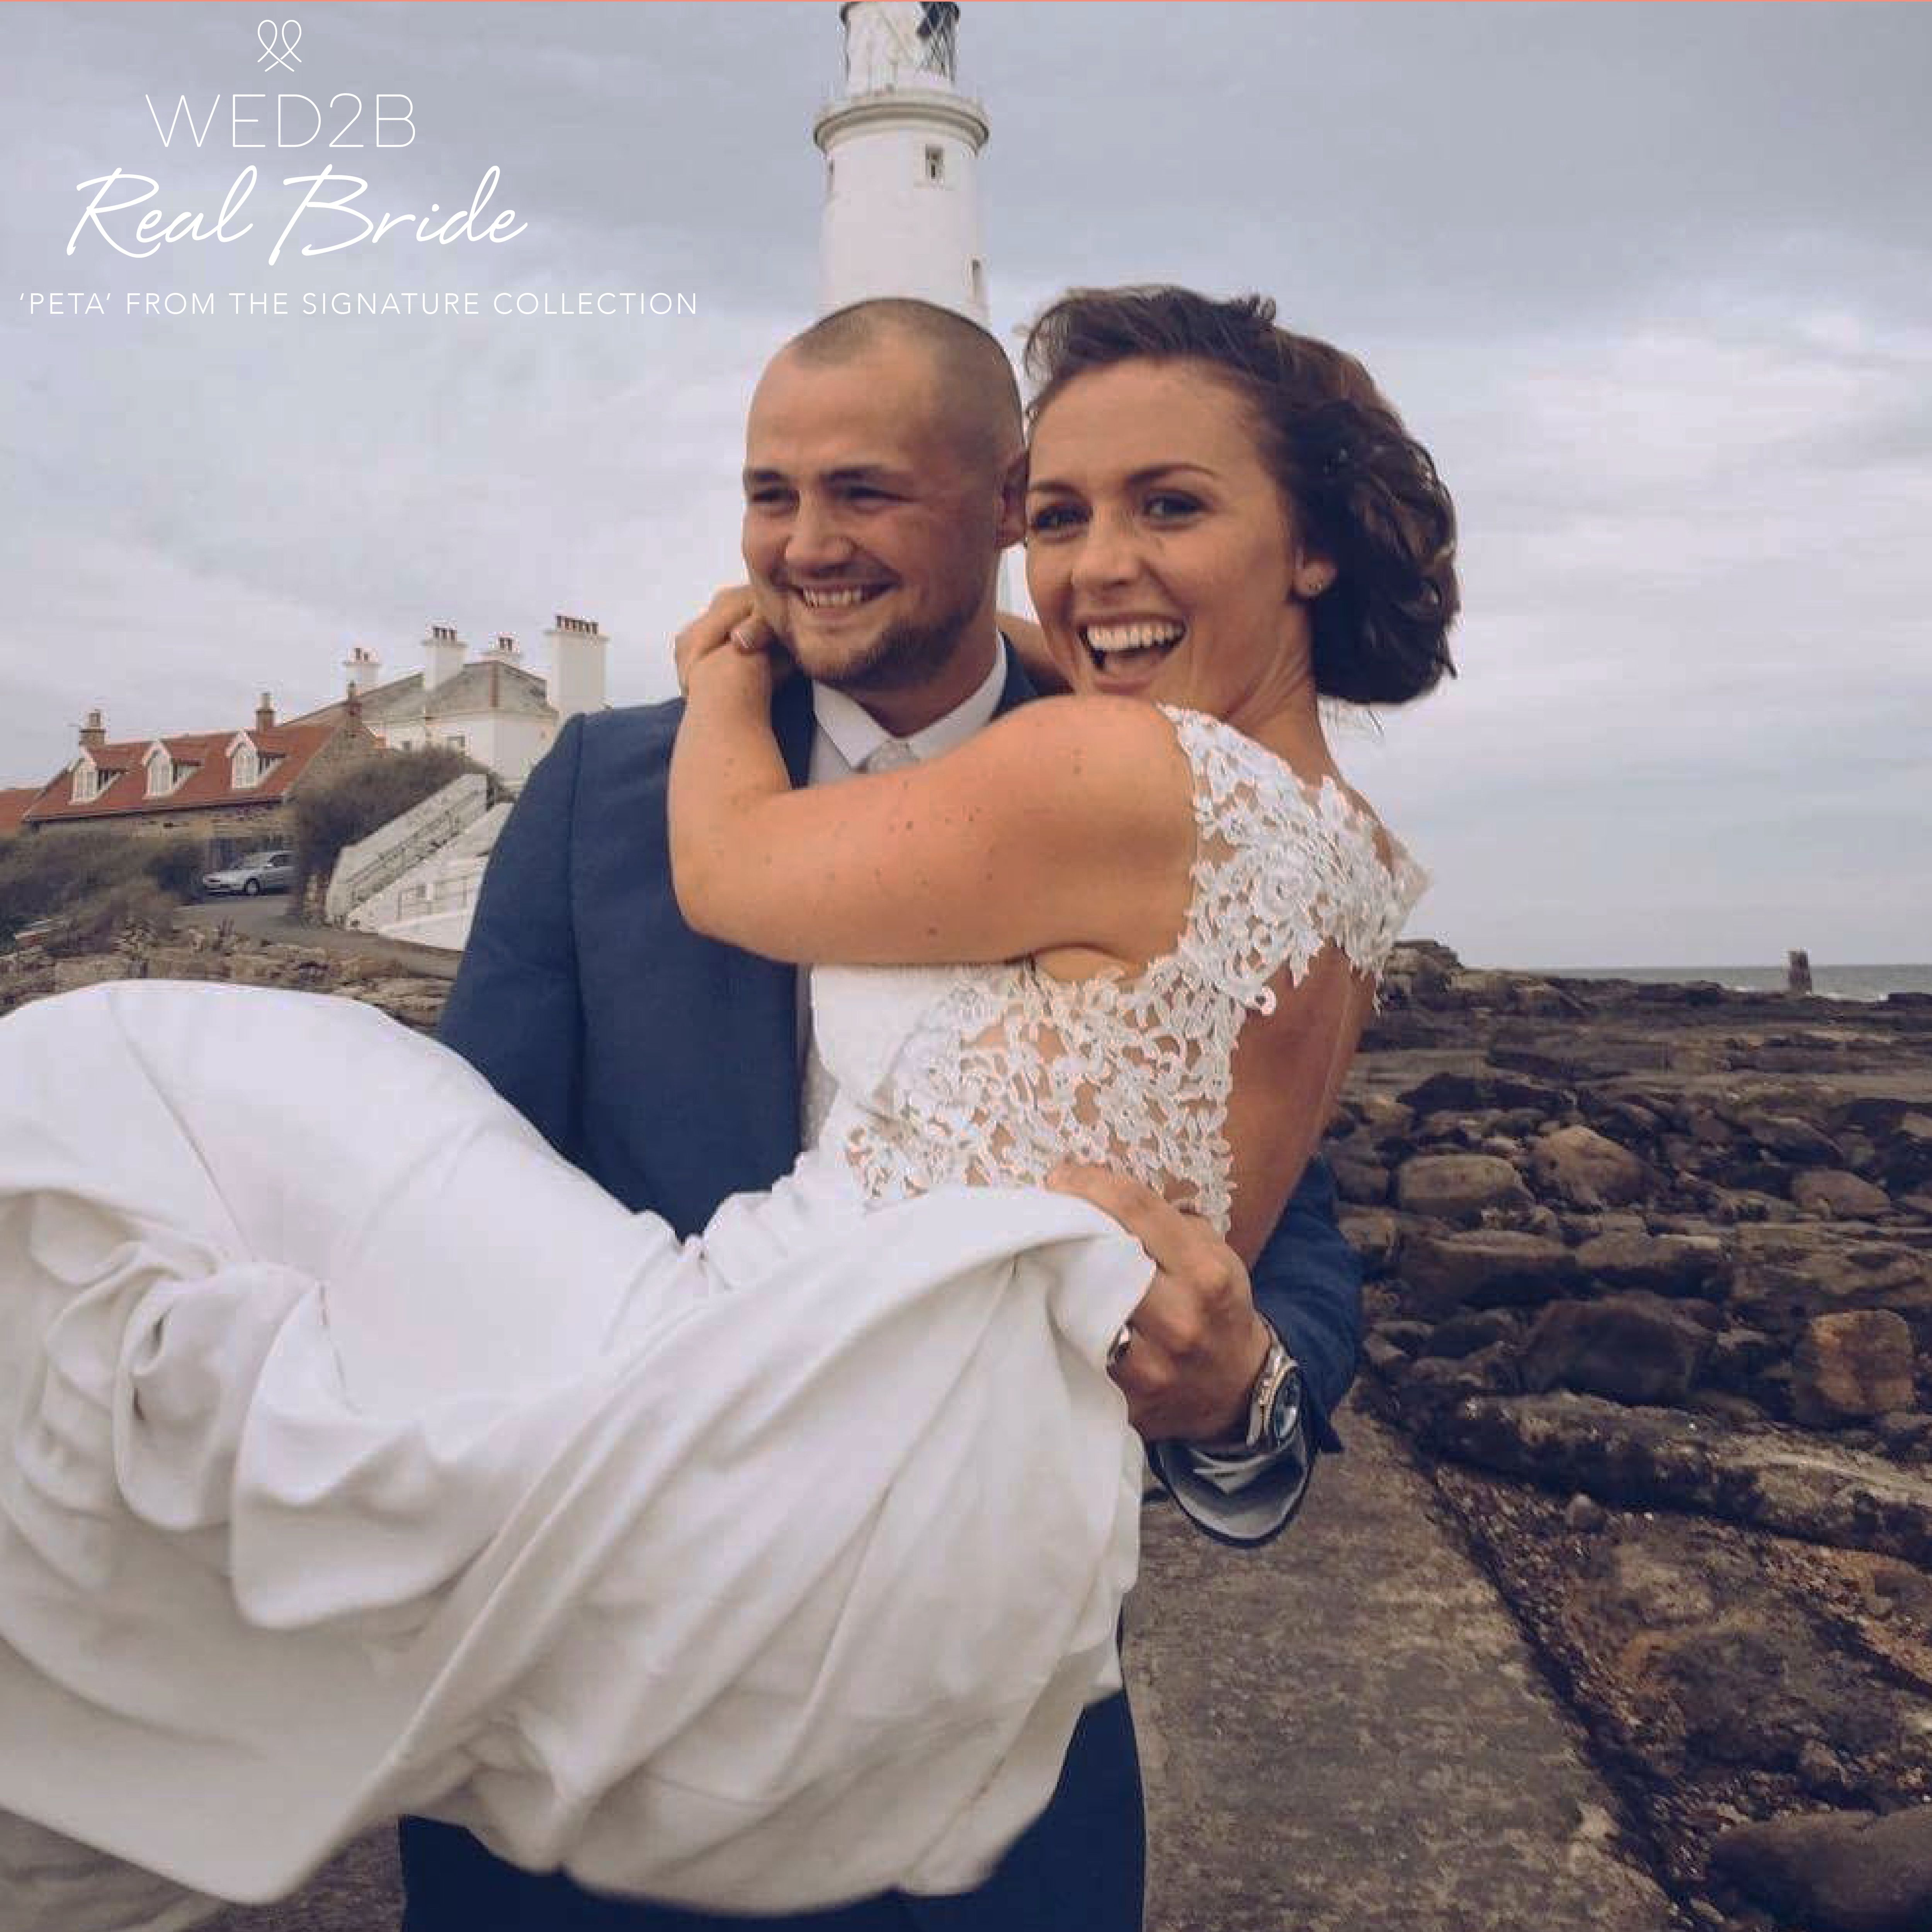 Real Brides Wed2b: Kayleigh Looks Absolutely Stunning In 'Peta' From The